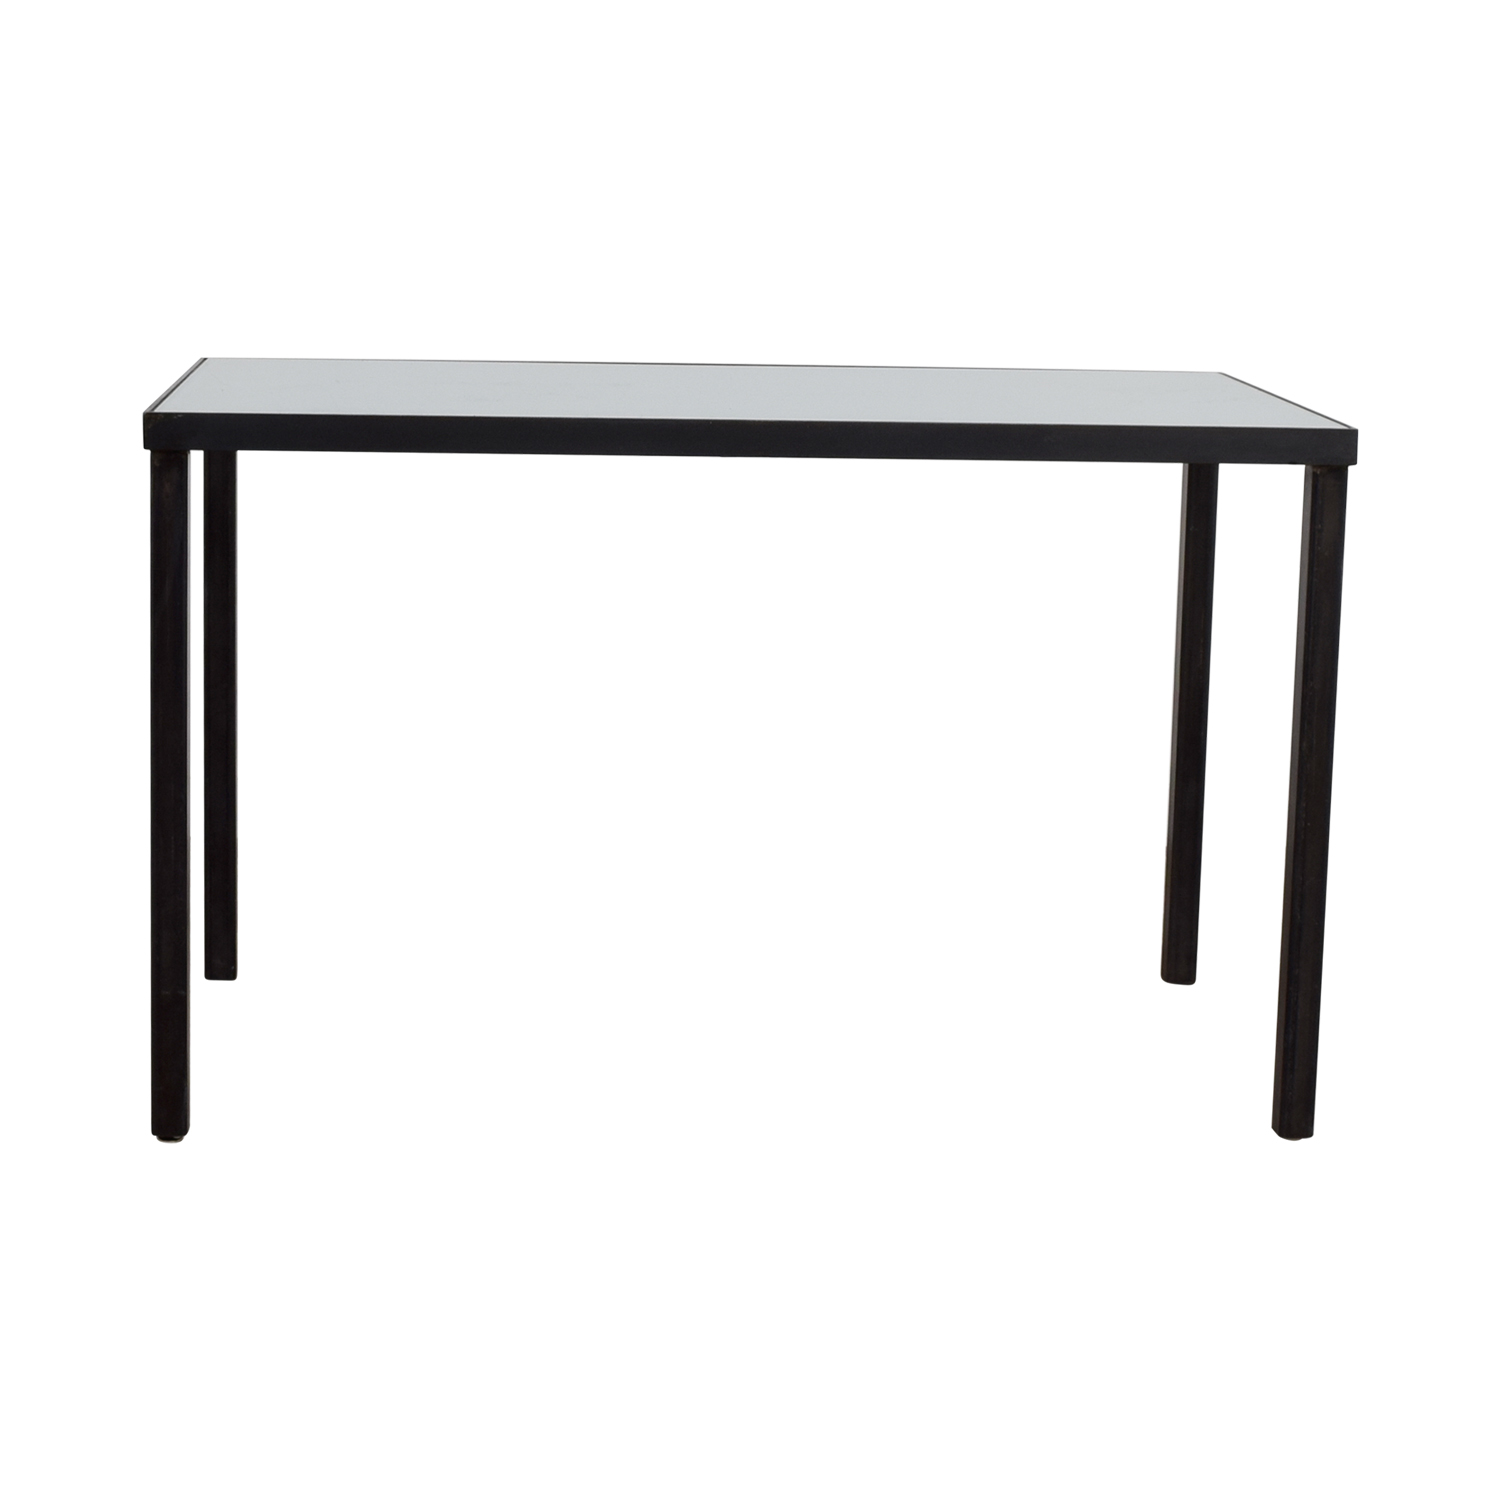 huge discount 877af 0e3ba 82% OFF - West Elm West Elm Glass and Metal Desk Table / Tables